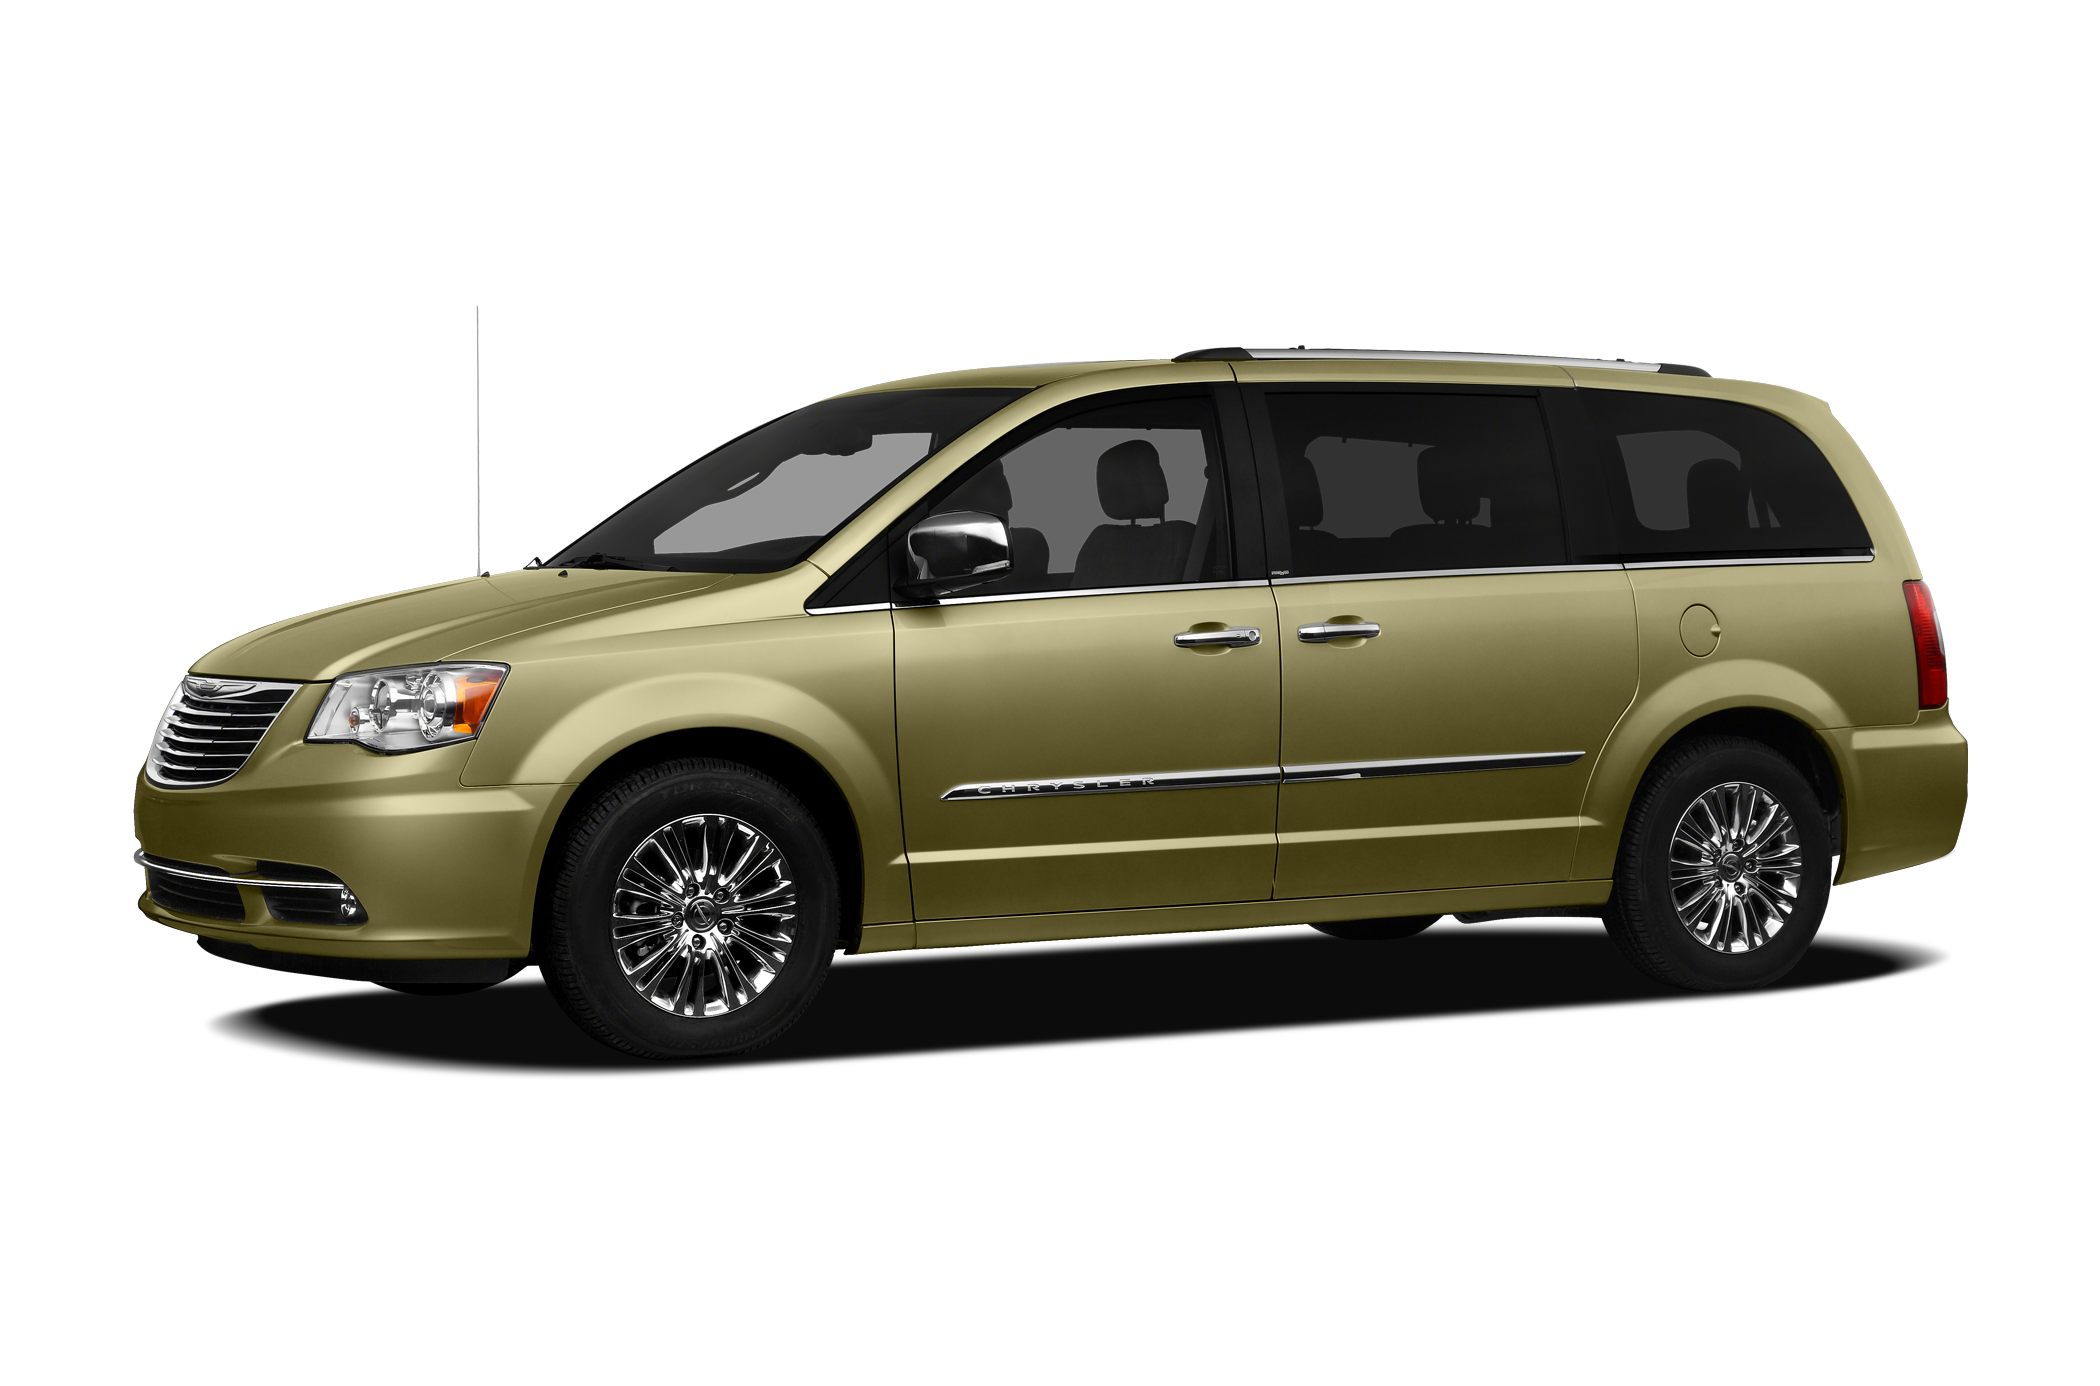 2011 Chrysler Town & Country Limited Minivan for sale in Green Bay for $20,598 with 56,823 miles.